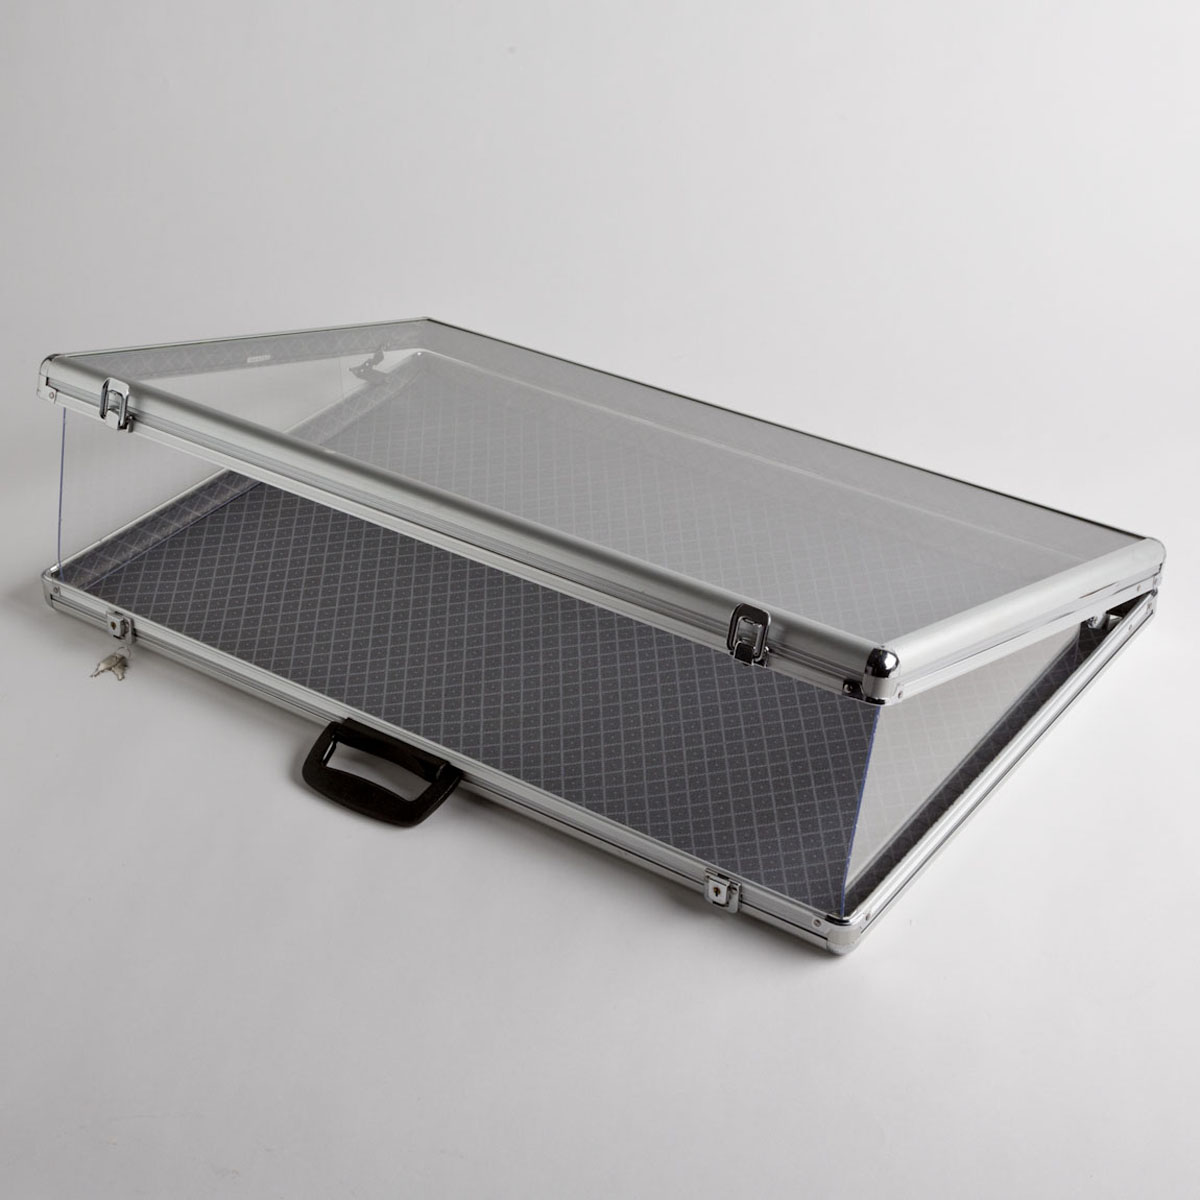 Aluminum Display Case With Glass Cover Ab Store Fixtures